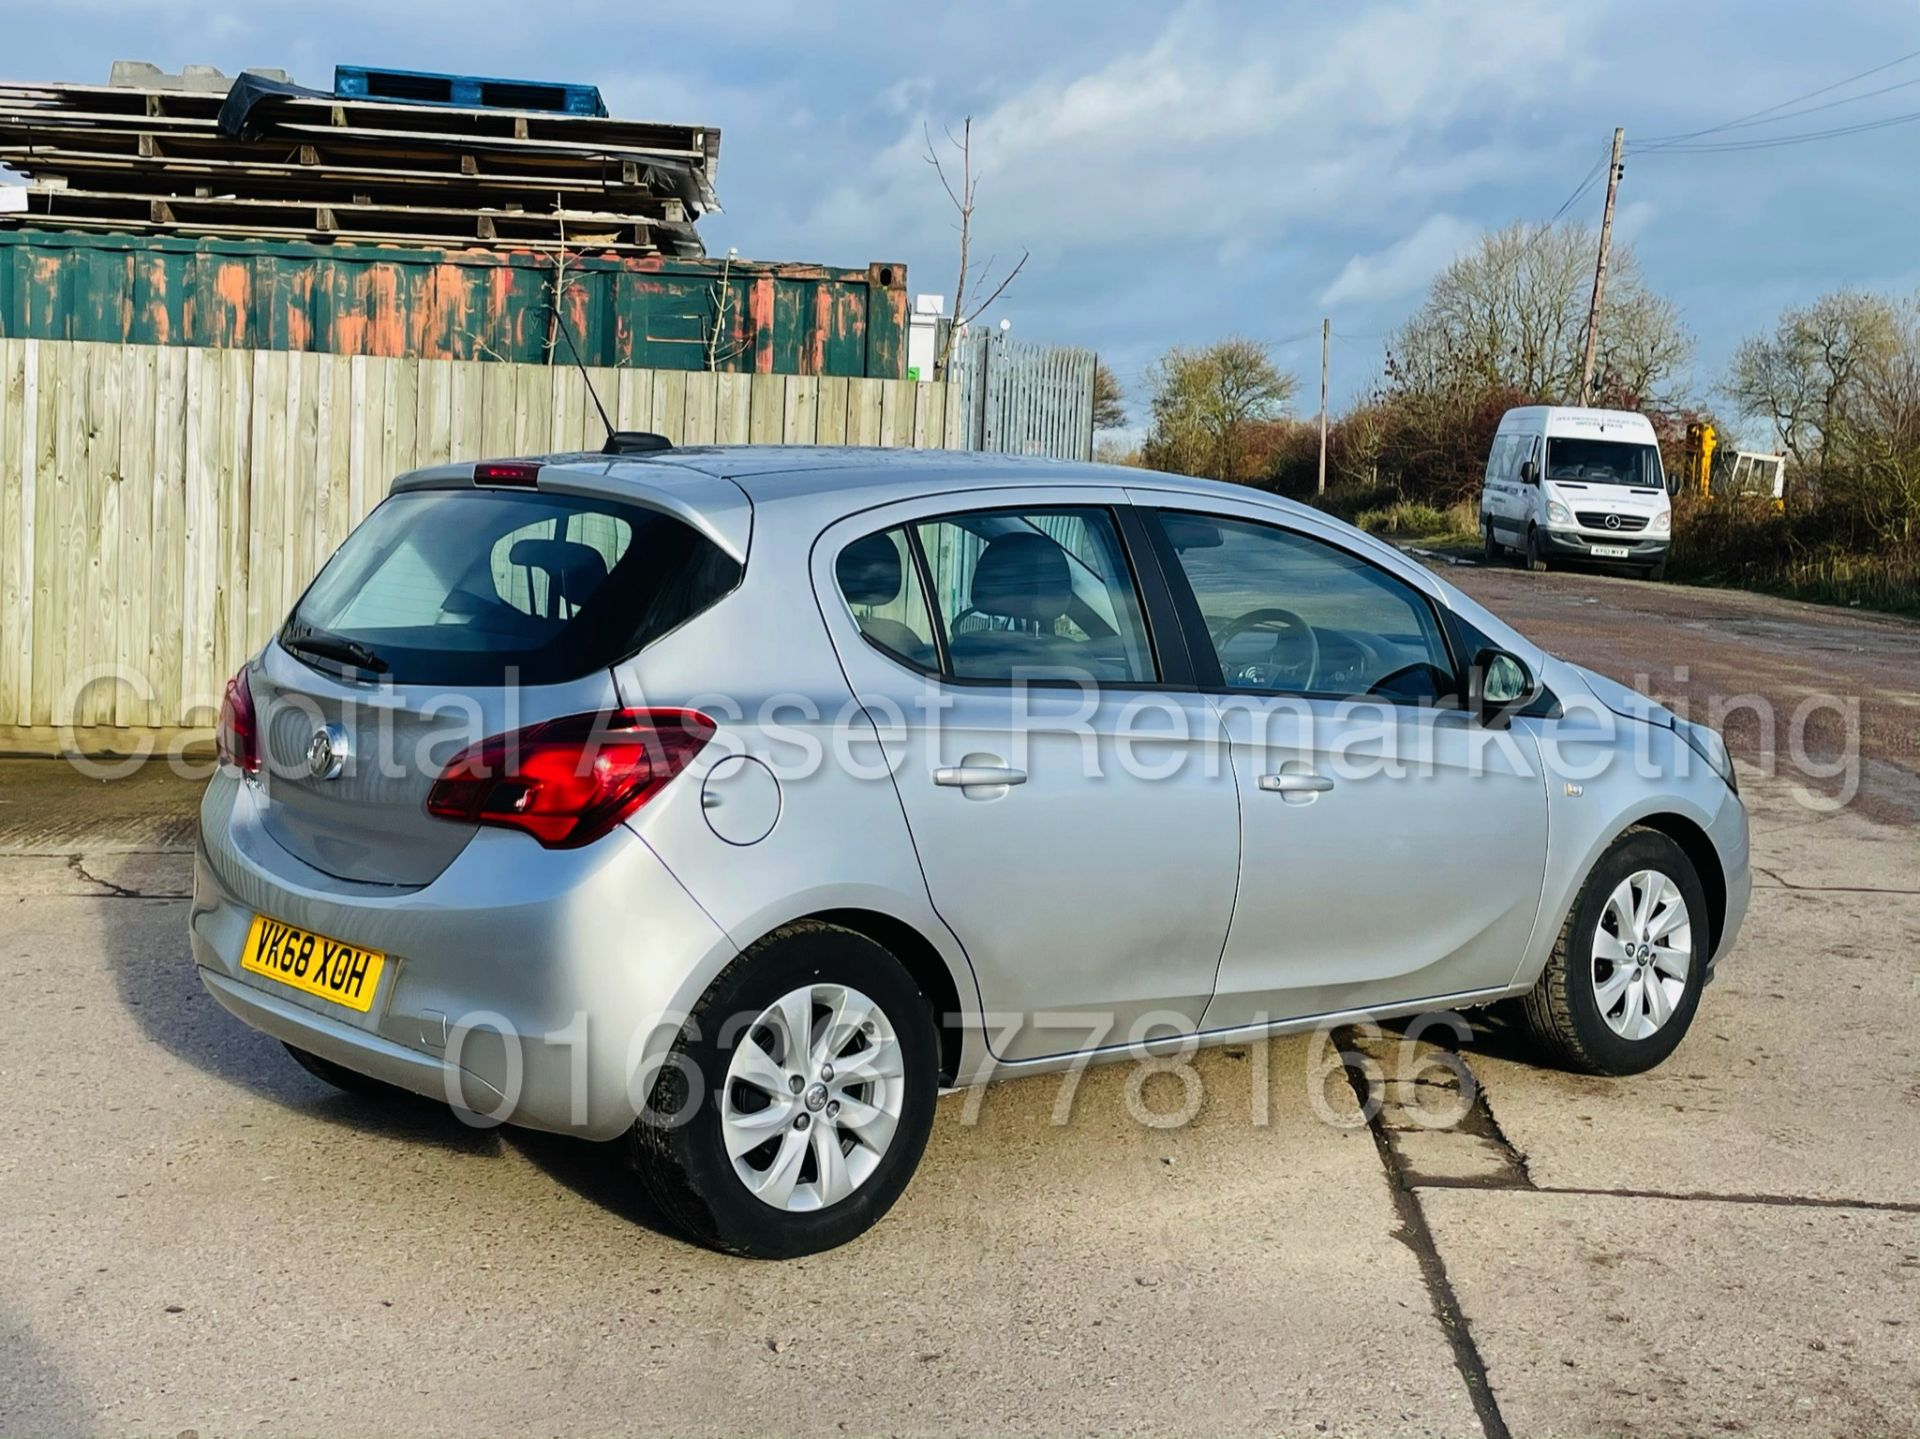 On Sale VAUXHALL CORSA *DESIGN EDITION* 5 DOOR HATCHBACK (2019 - NEW MODEL) 1.4 PETROL - (1 OWNER) - Image 13 of 42